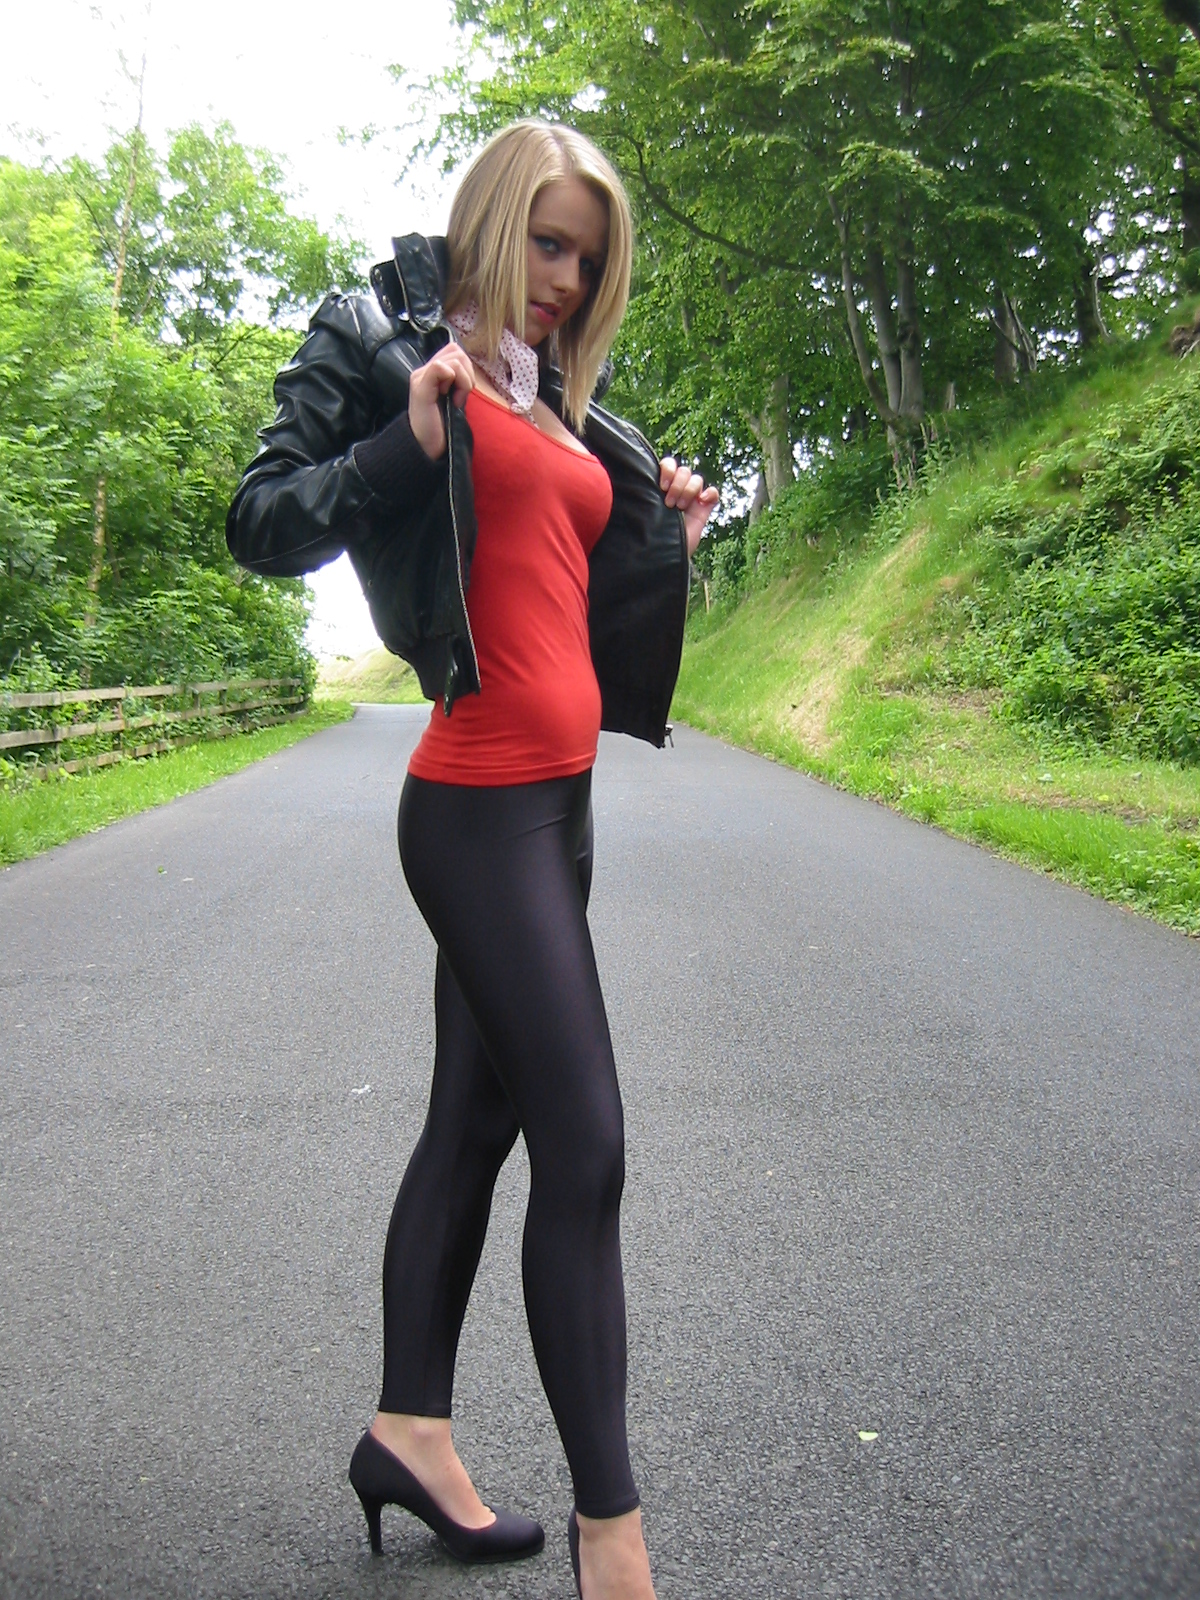 Hot girls with spandex